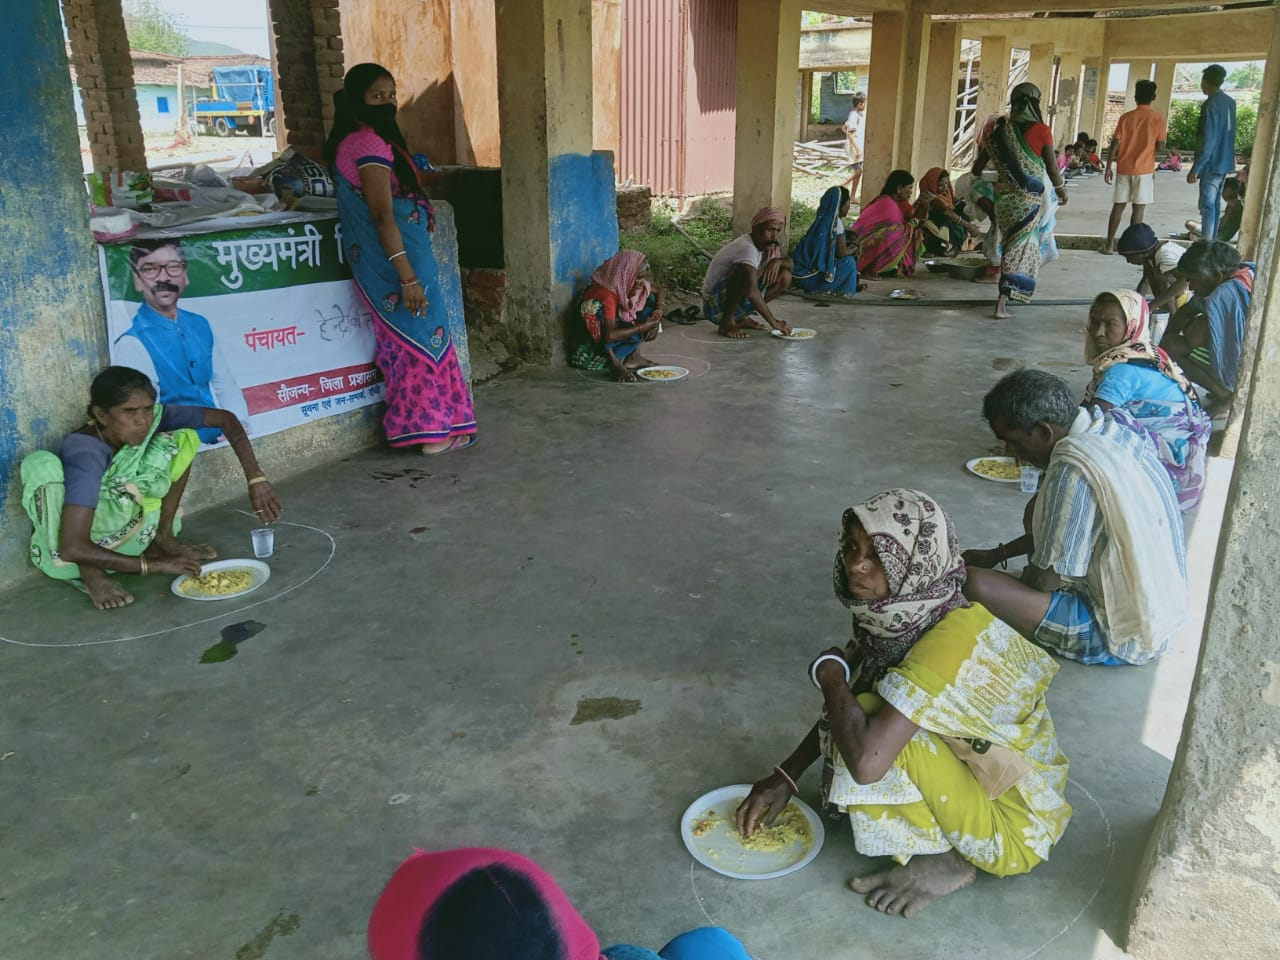 Didi Kitchens serving food to lakhs of people amid lock down in Jharkhand